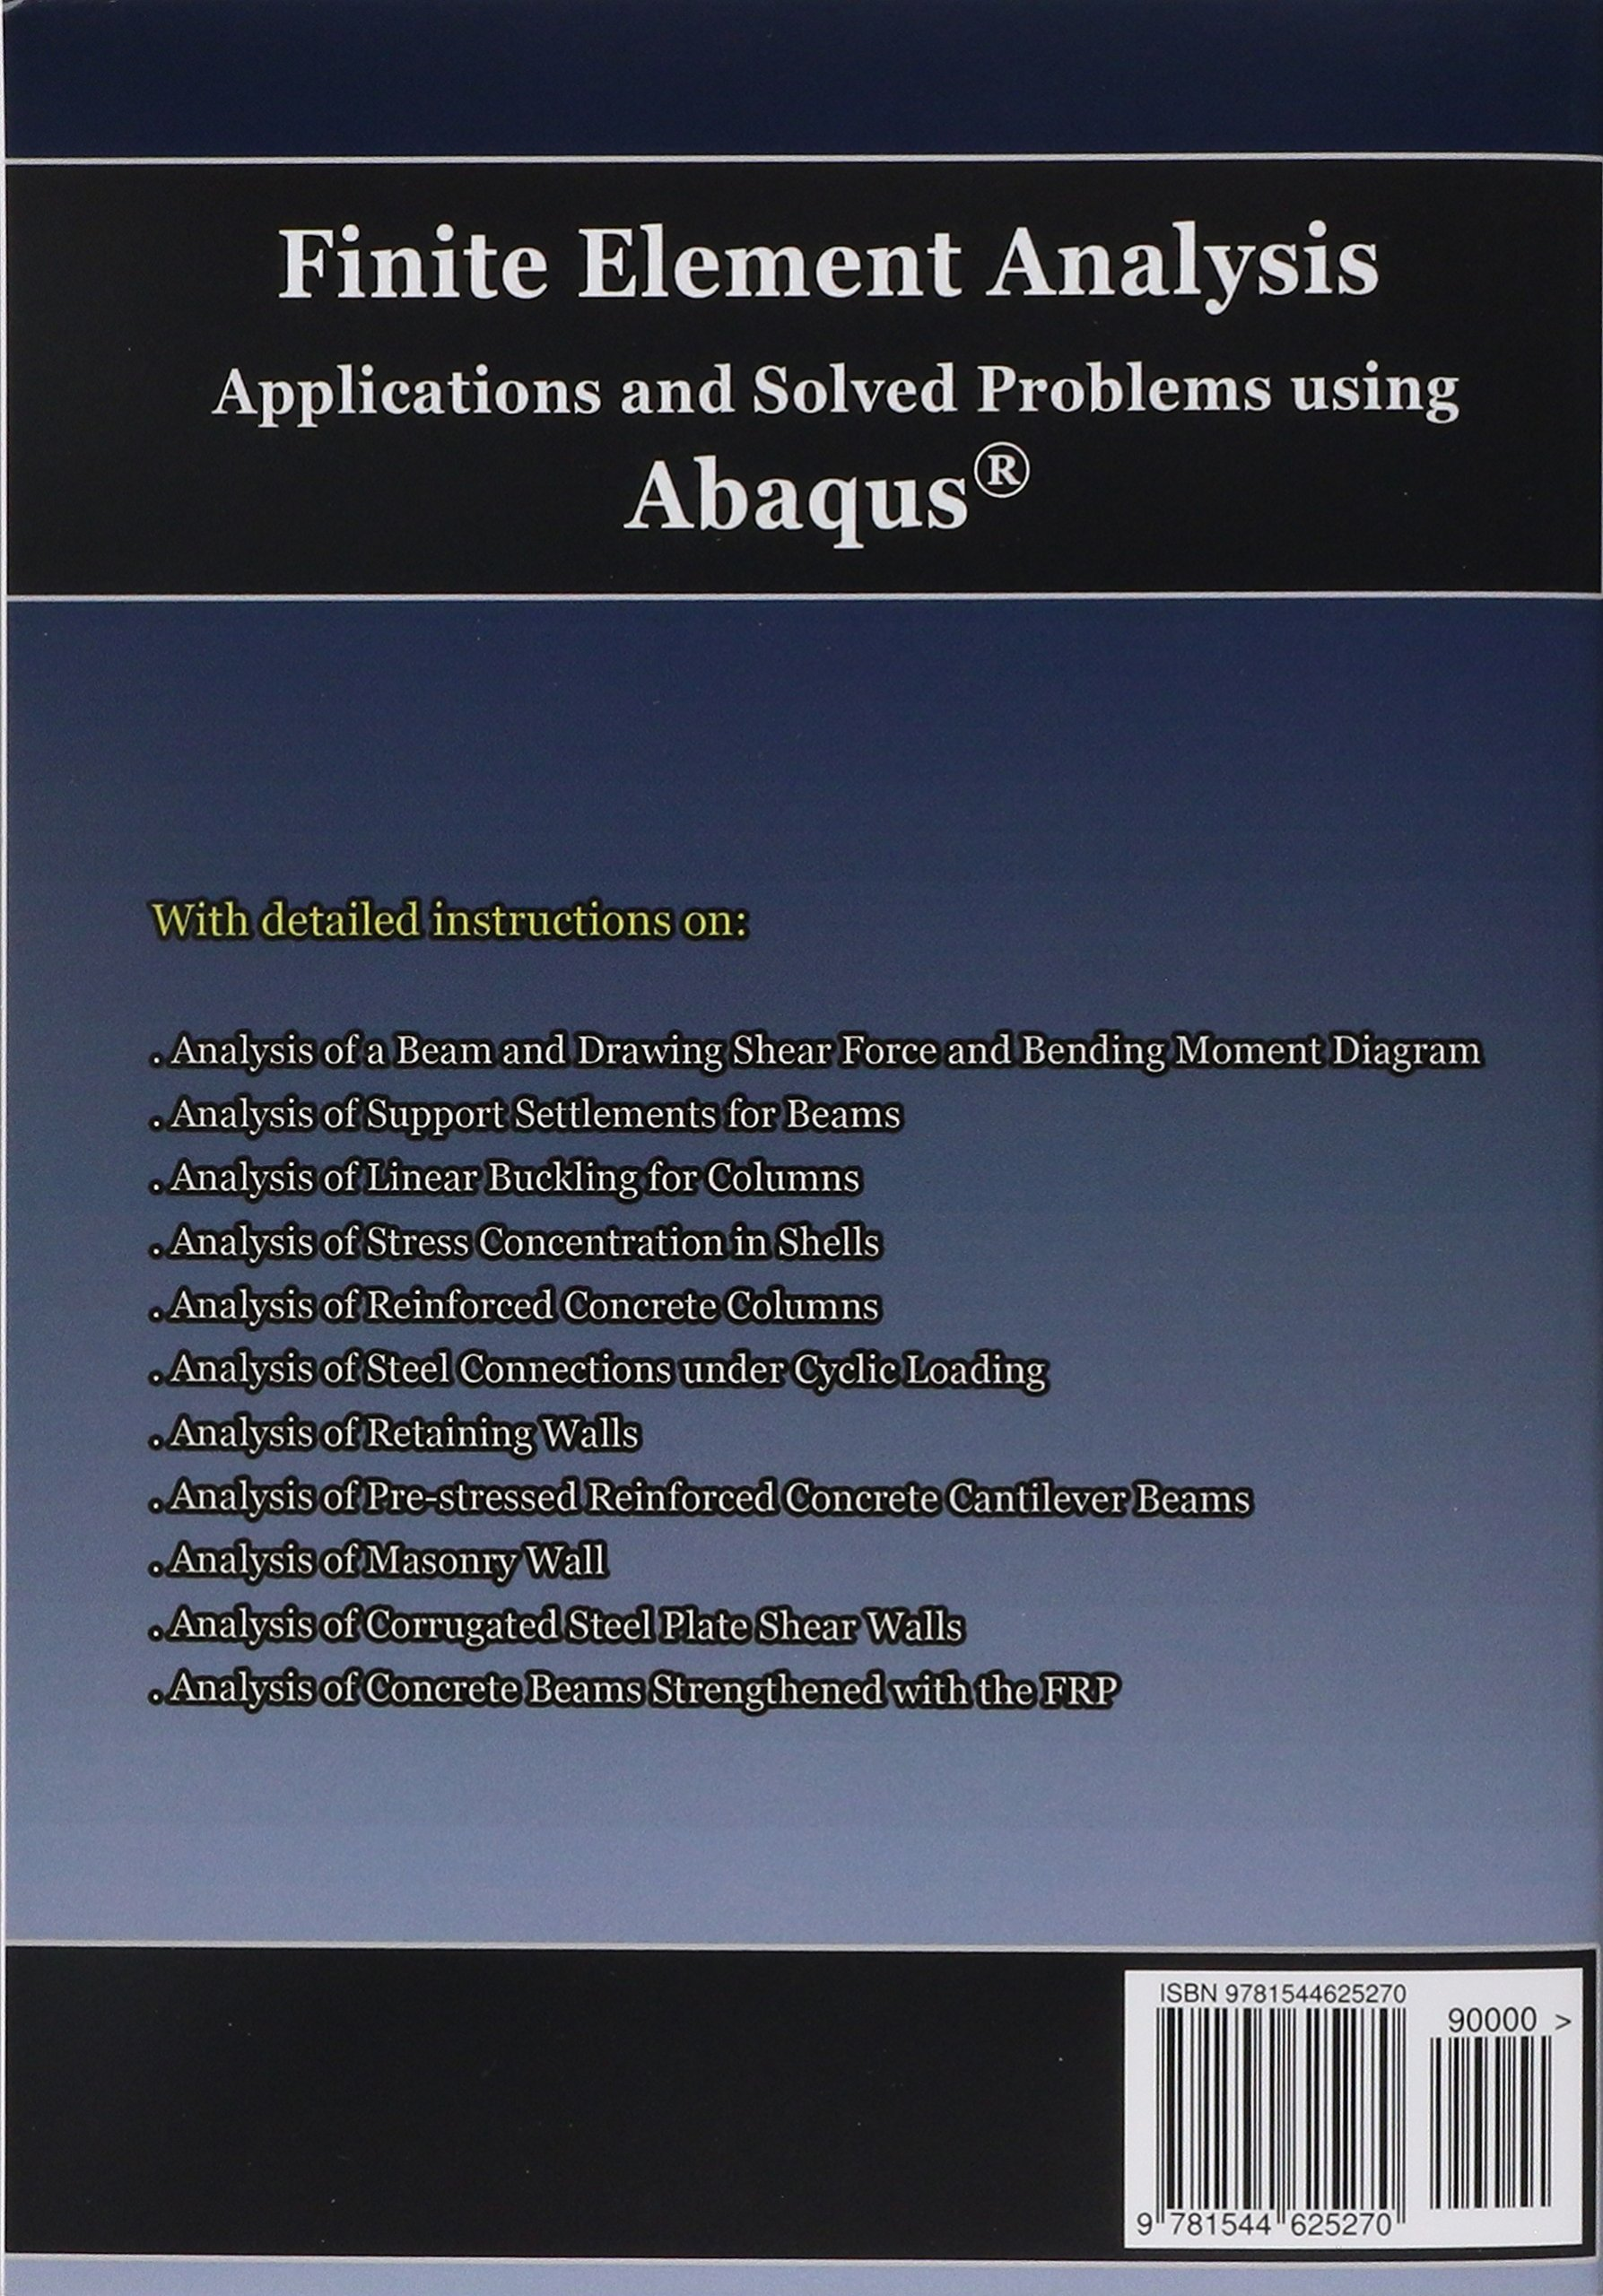 Finite Element Analysis Applications and Solved Problems